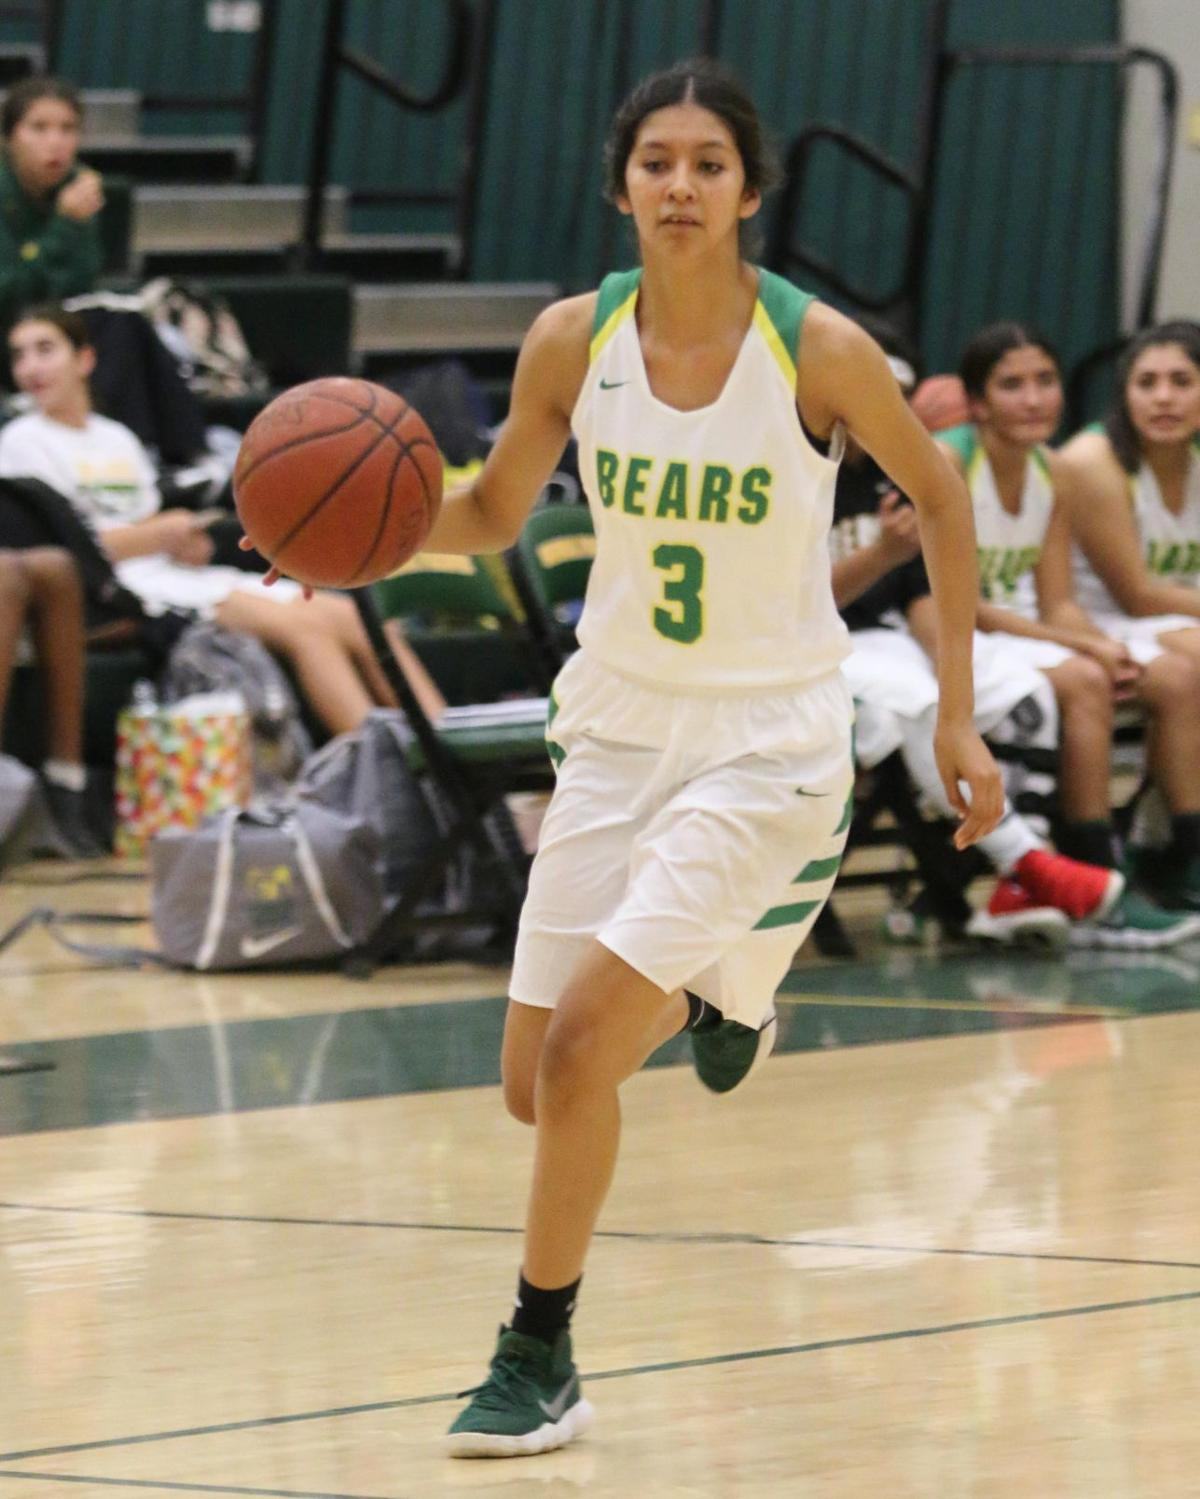 Still the team to beat: Sierra Pacific wins league opener 79-11